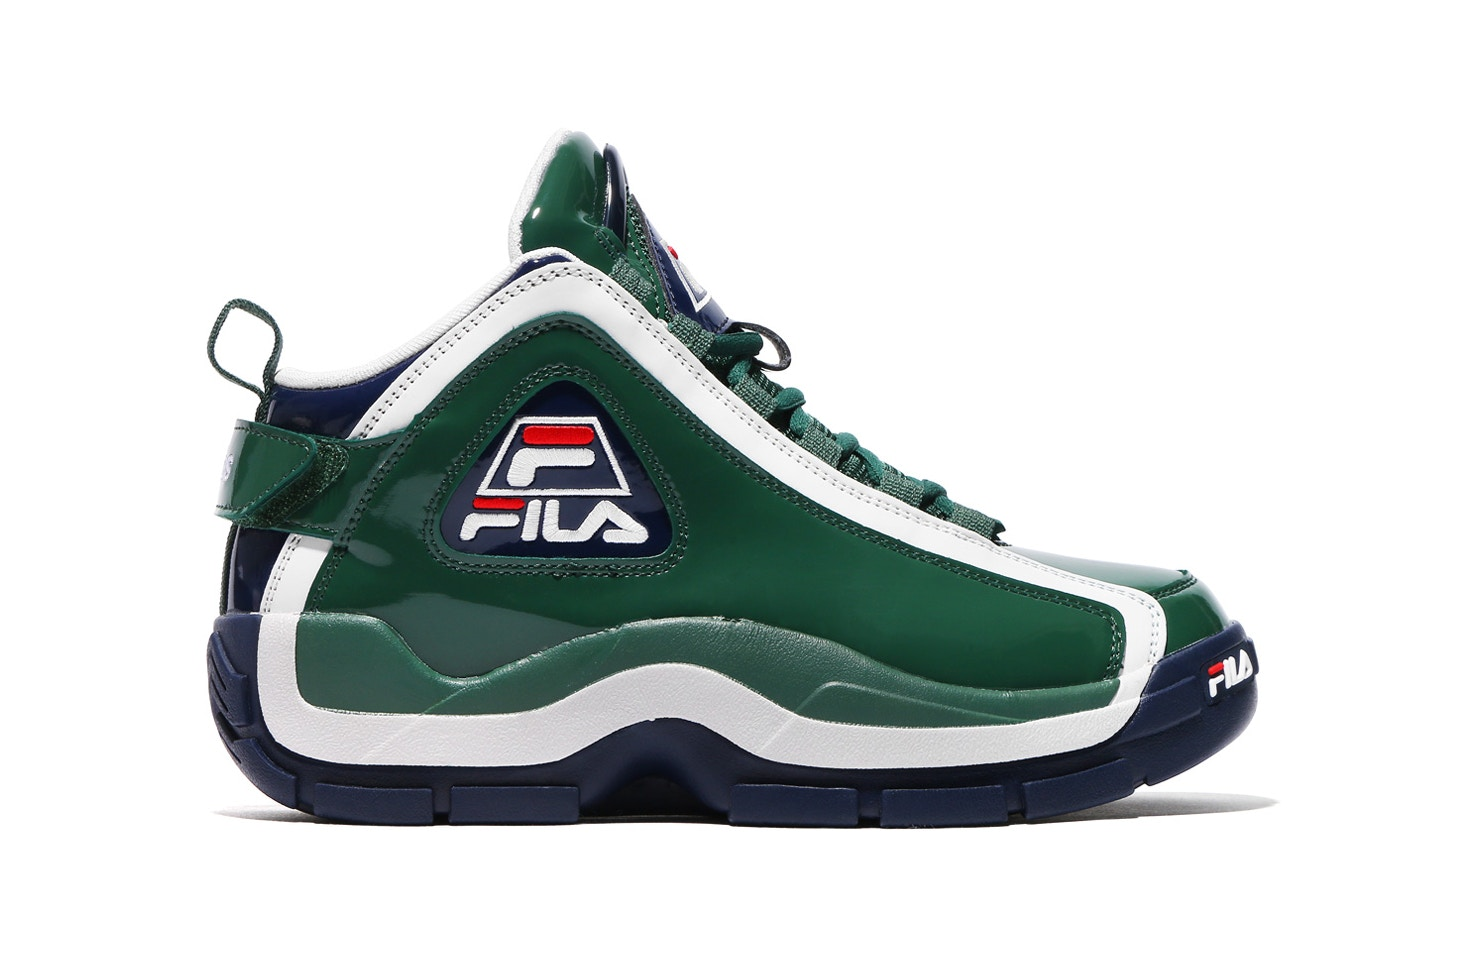 Third Kinetics x FILA 96 GL Collab Revealed [SneakPeak] kinetics fila 96 gl patent leather 2